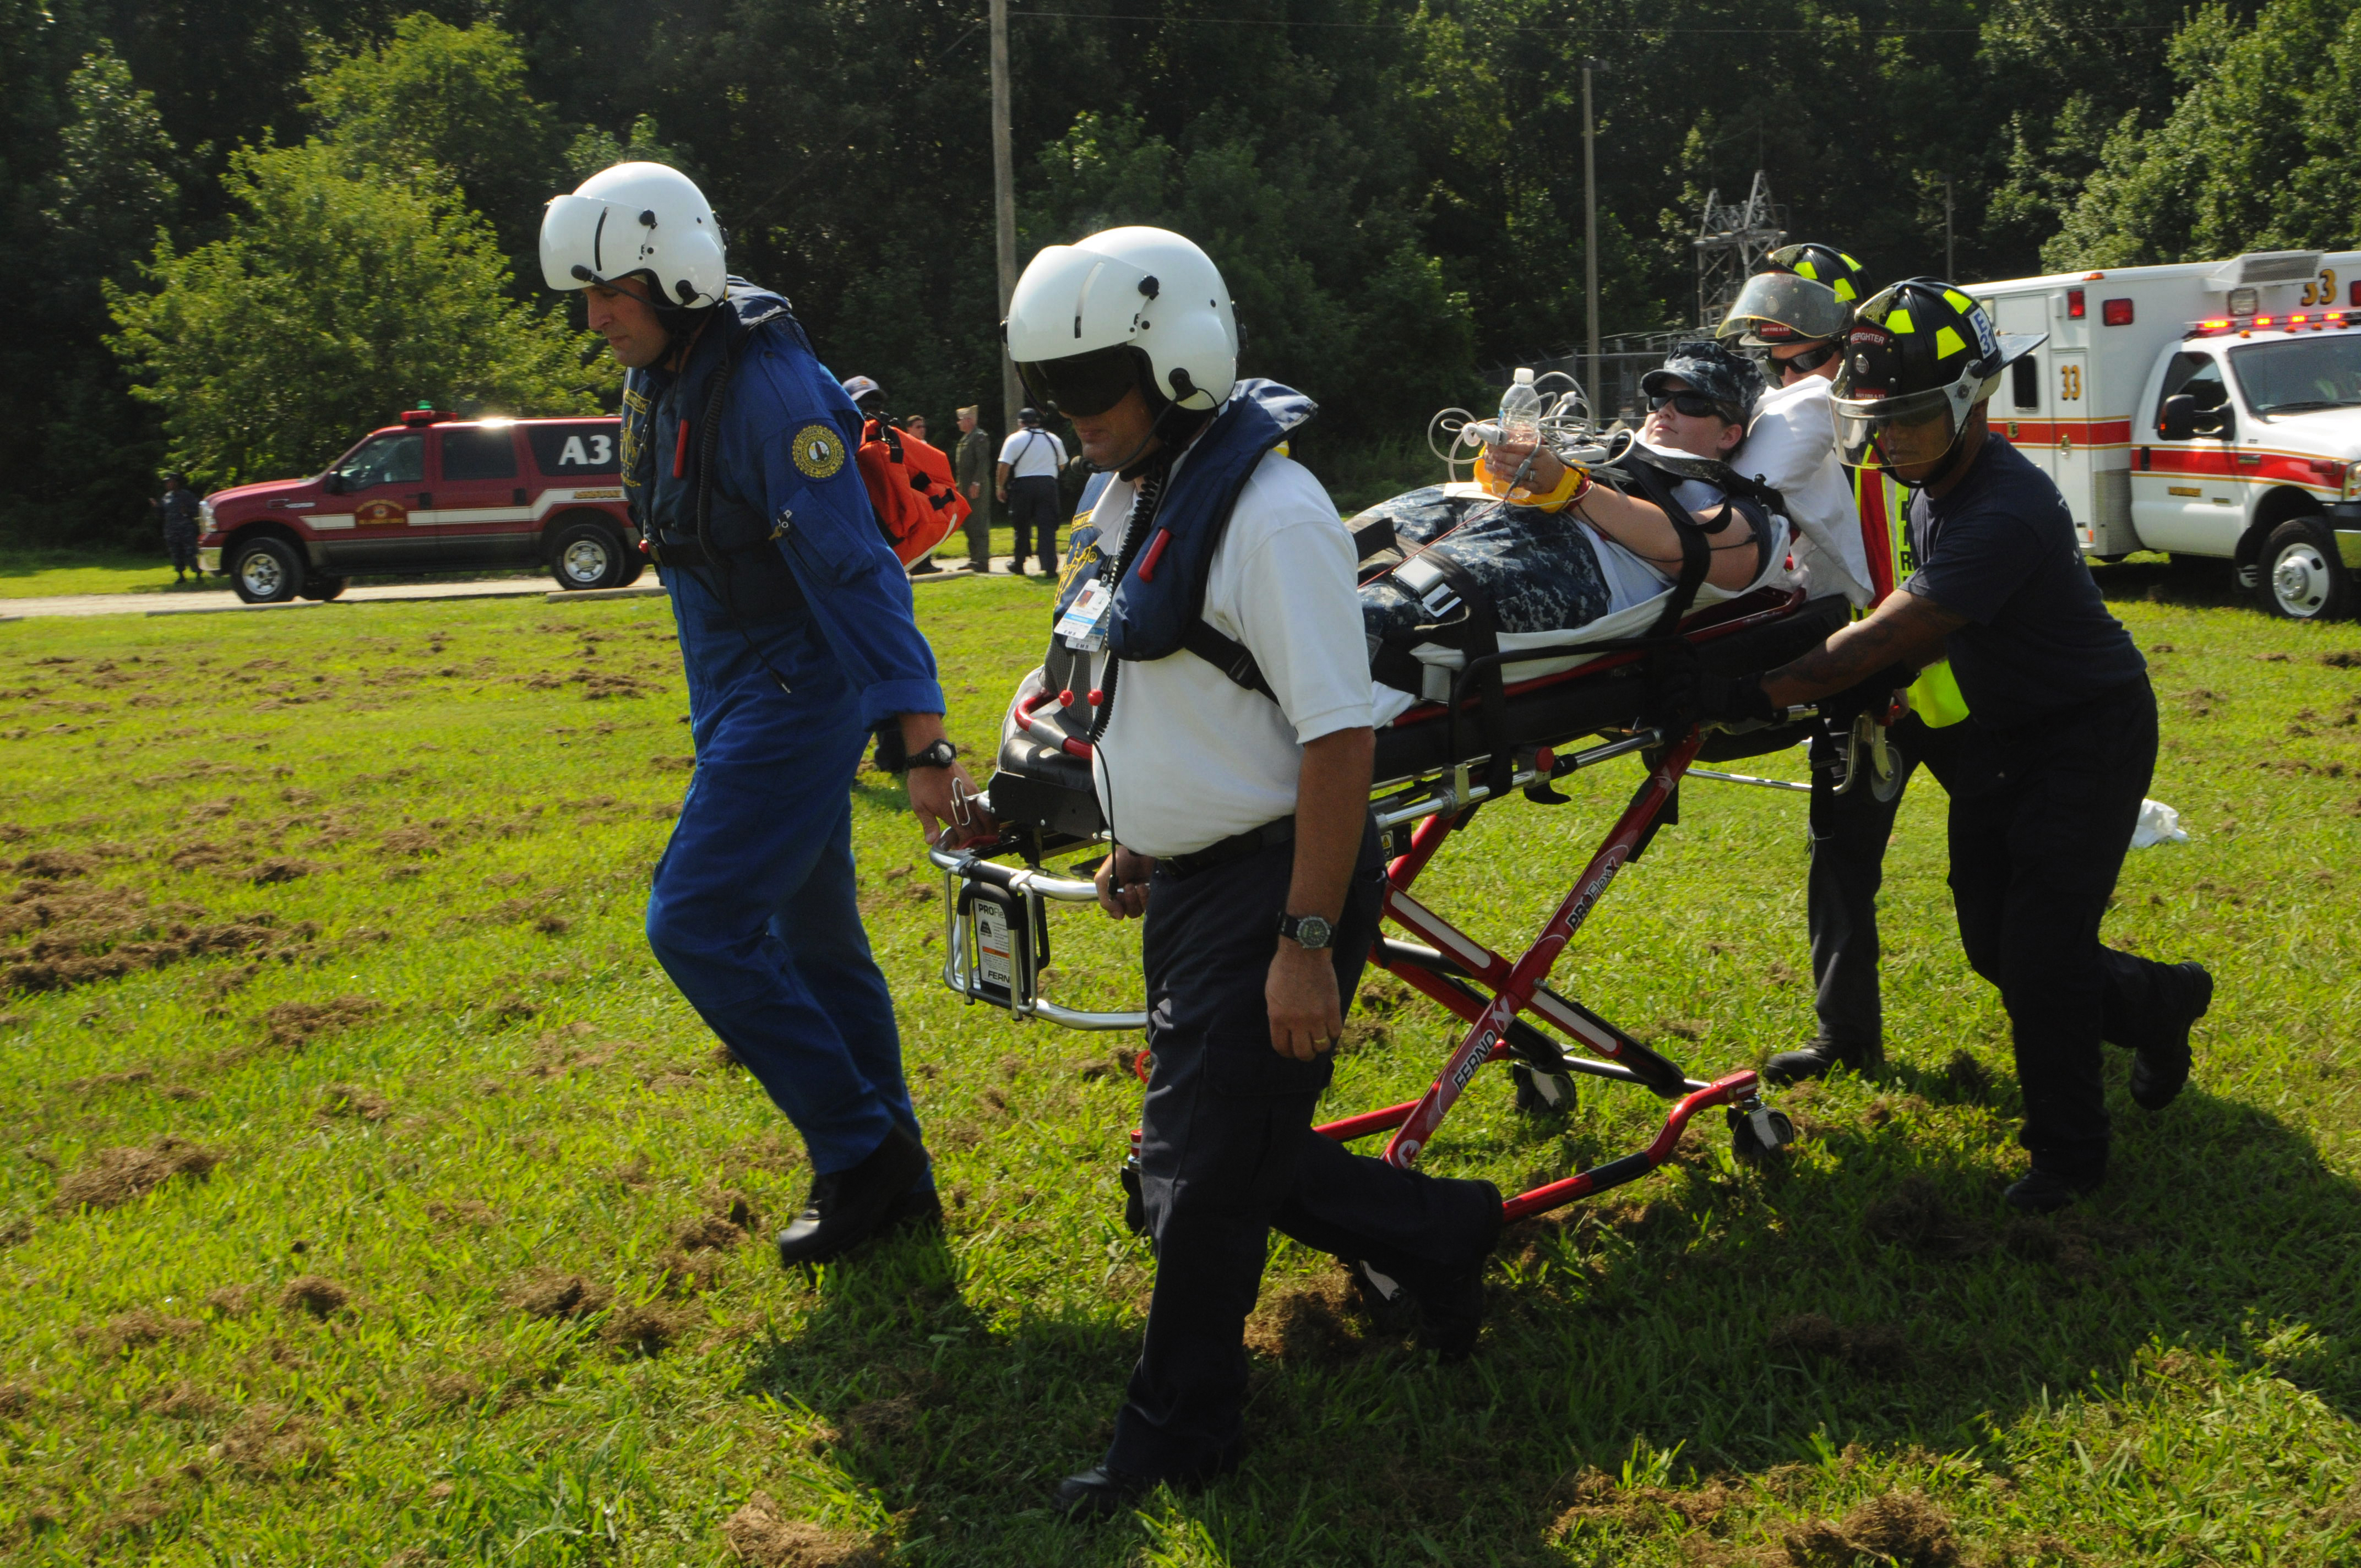 helicopter emt with File Us Navy 100809 N 9180m 298 John Bianco  Division Chief Of The Virginia Beach Police Department And Paramedic Richard Baker Are Assisted By Firefighter Paramedic David Phelps And Firefighter Jason Piniol on National Guard Flight Medic Training further Ems Coloring Pages Free Printables Sketch Templates furthermore Firefighter 20clipart 20emergency 20vehicle further 16050 furthermore Emergencyresponder.